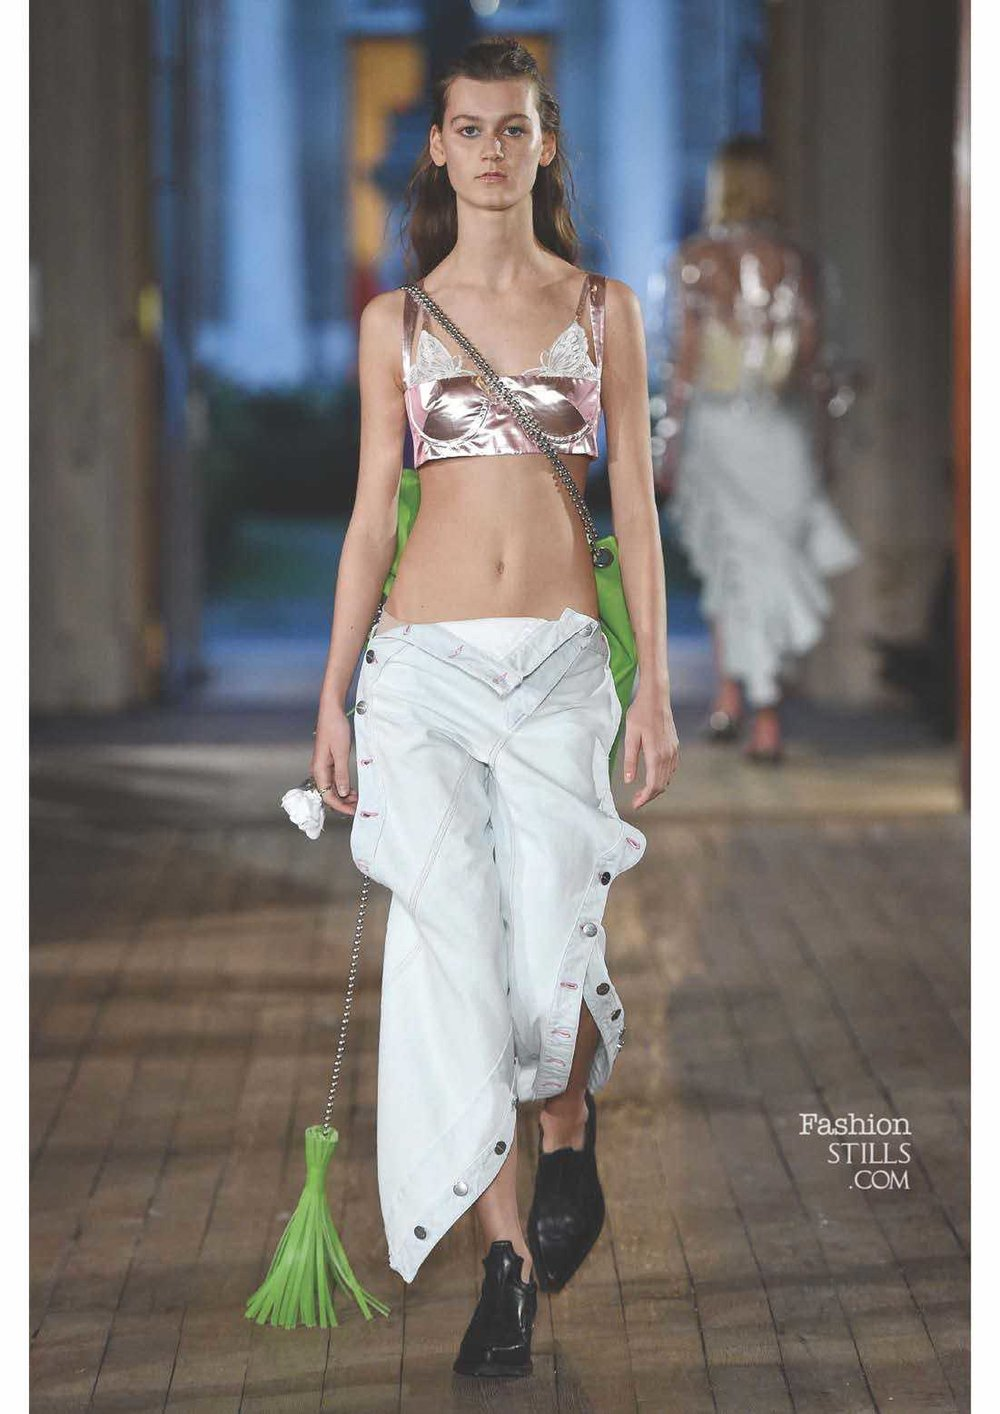 Neith Nyer_1513681575_49_look-book-_-press-release-ss18-neith-nyer-005.jpg